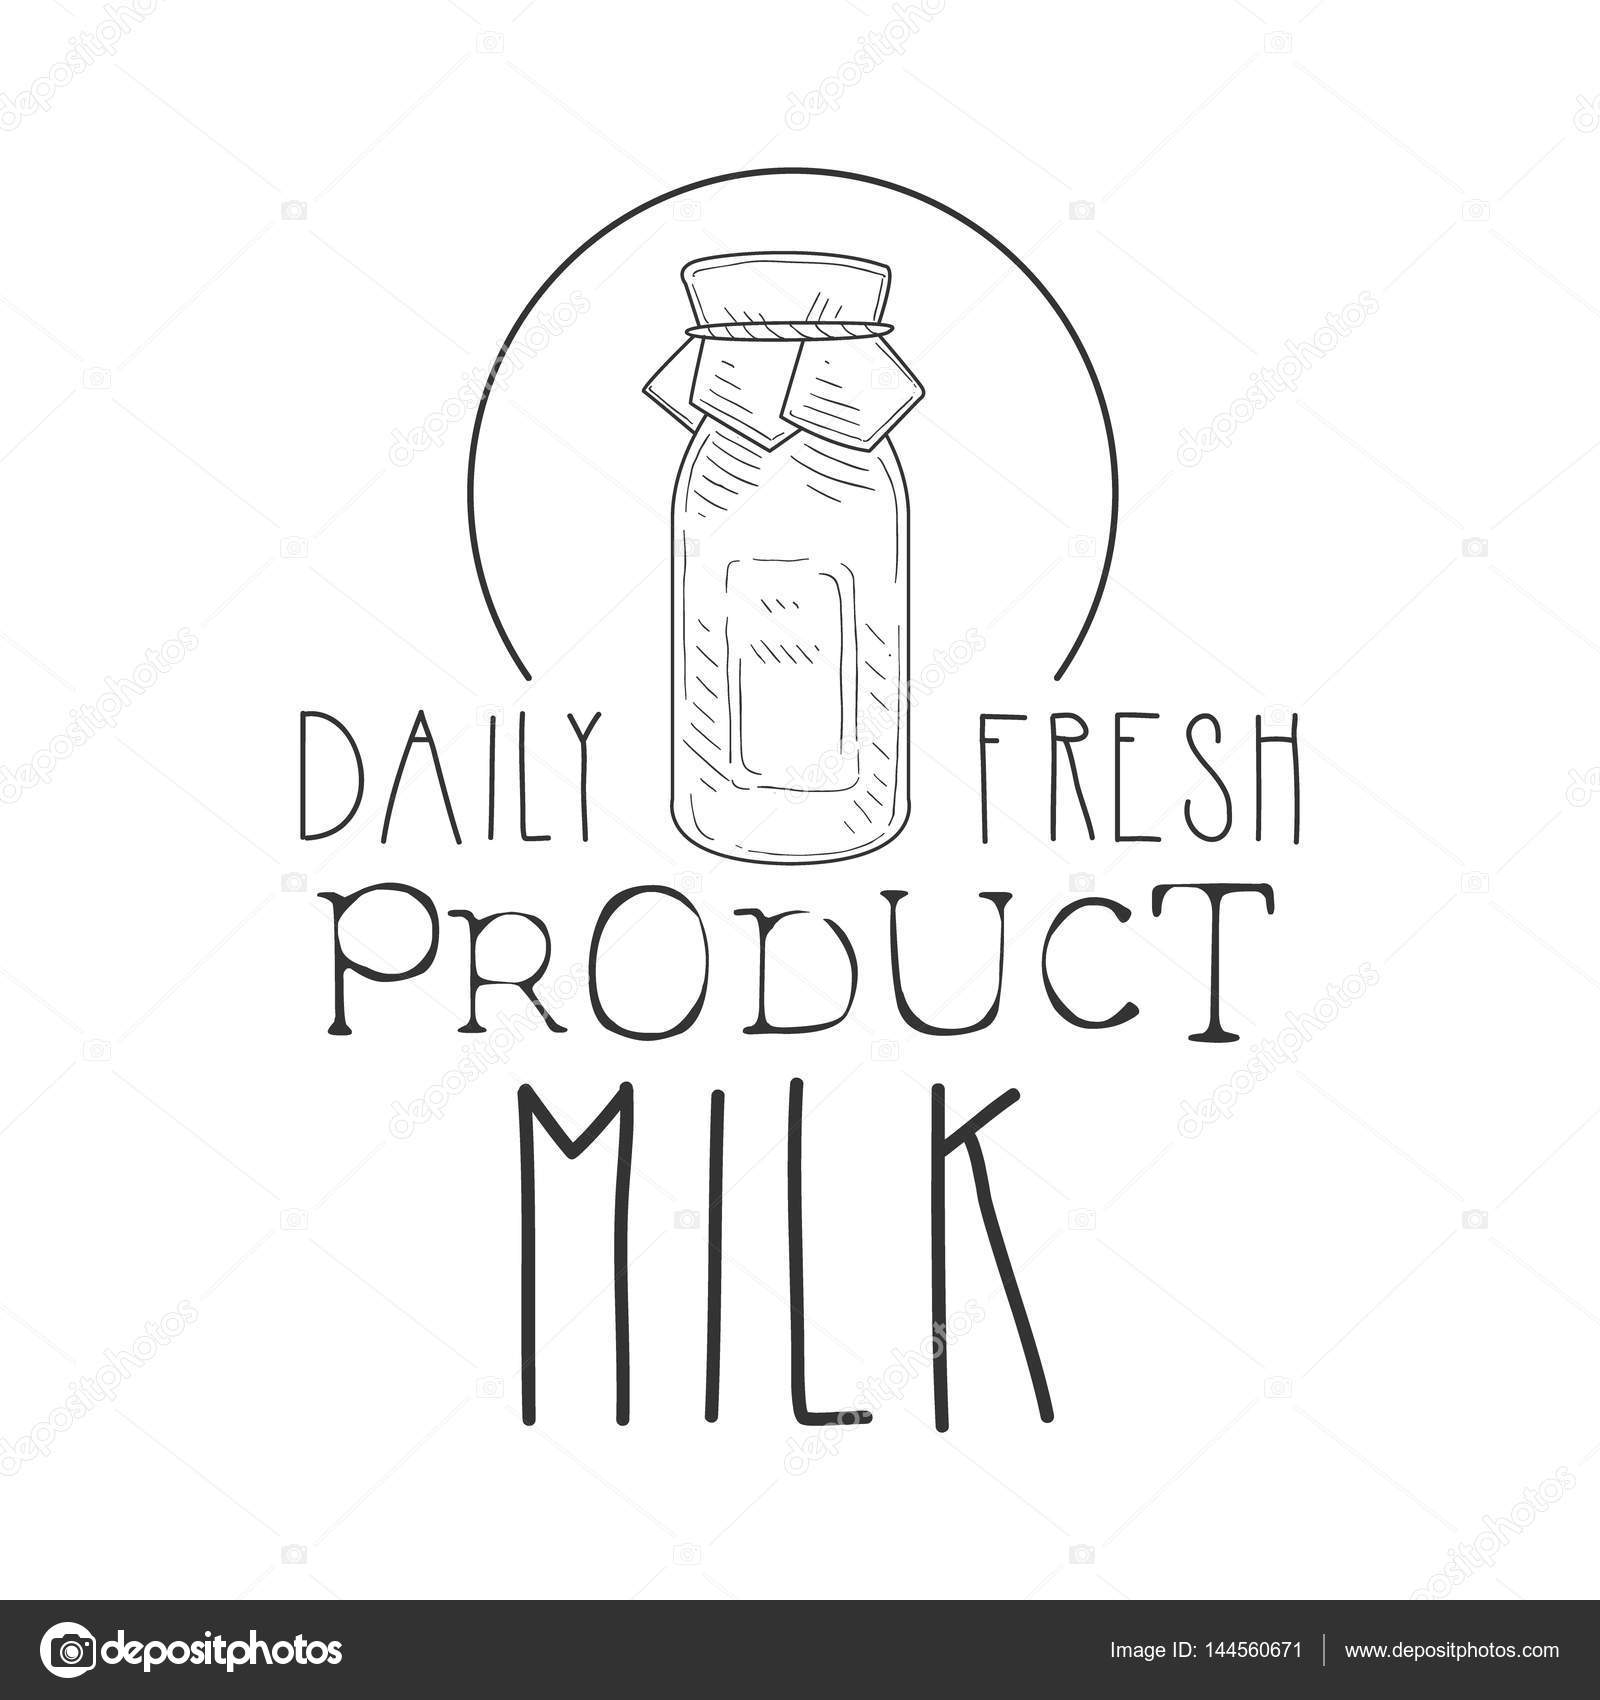 daily fresh milk product promo sign in sketch style with milk bottle